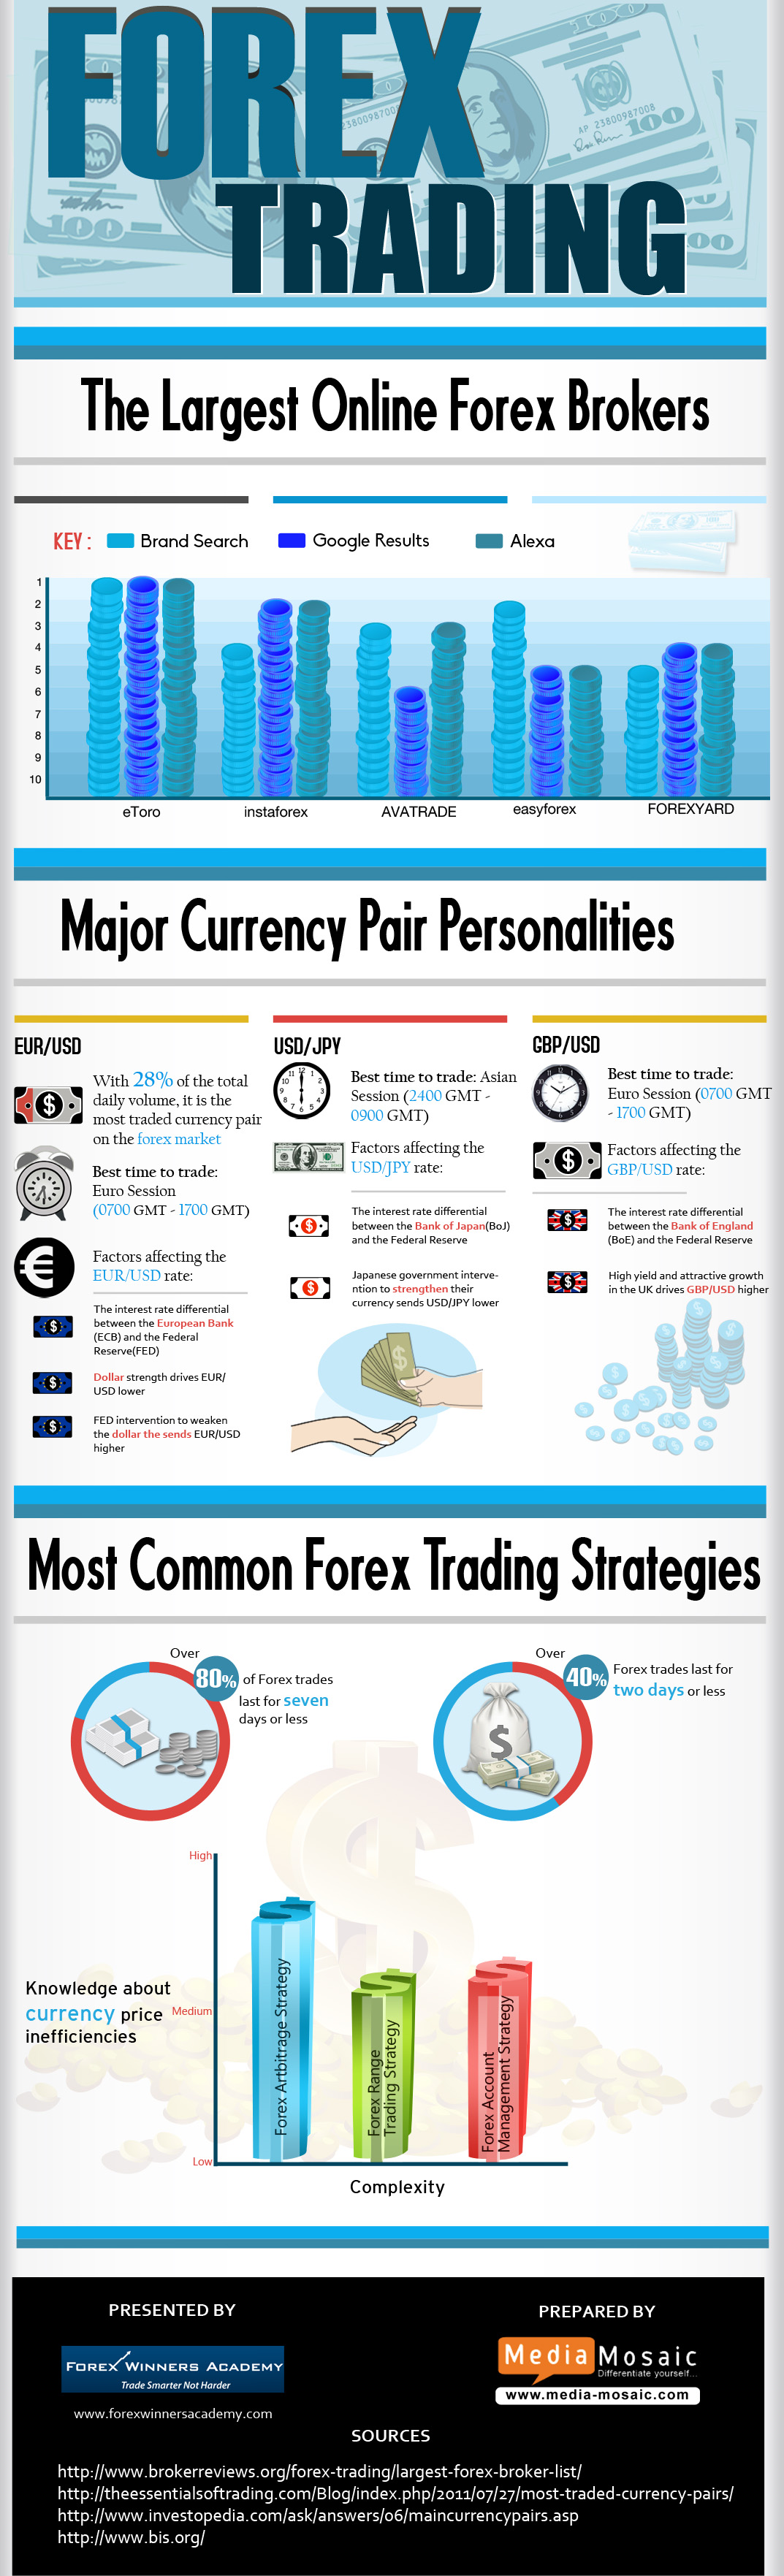 Forex strategy good x inc trading